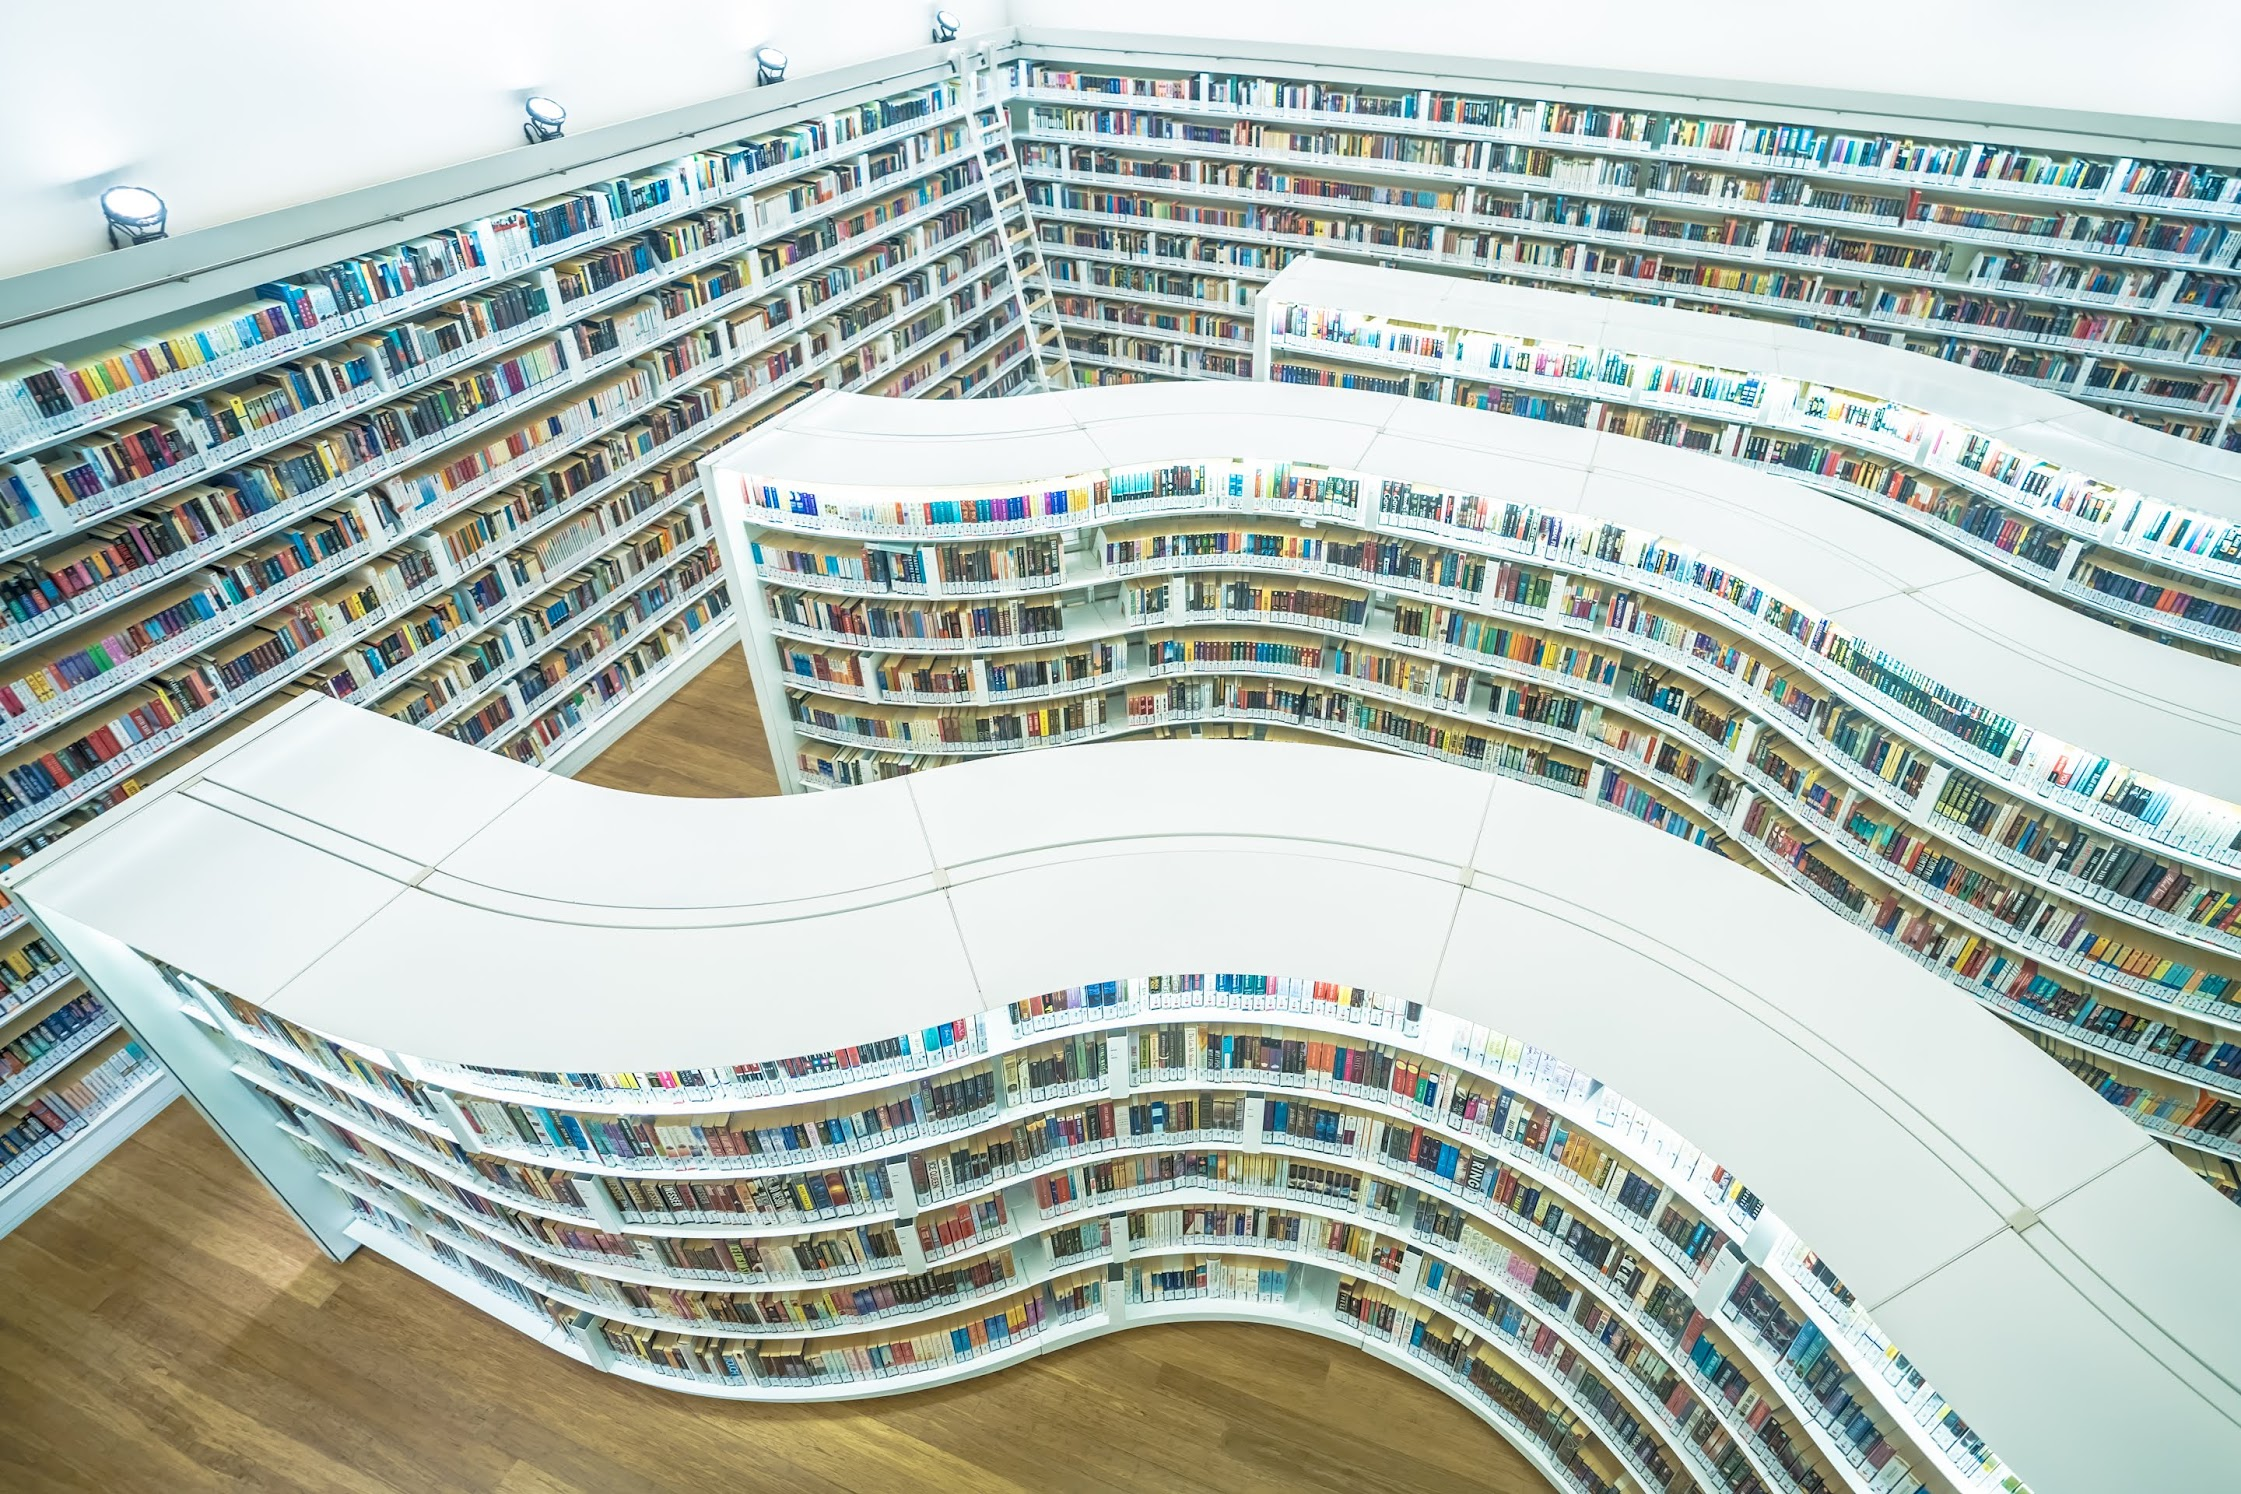 Singapore library@orchard3